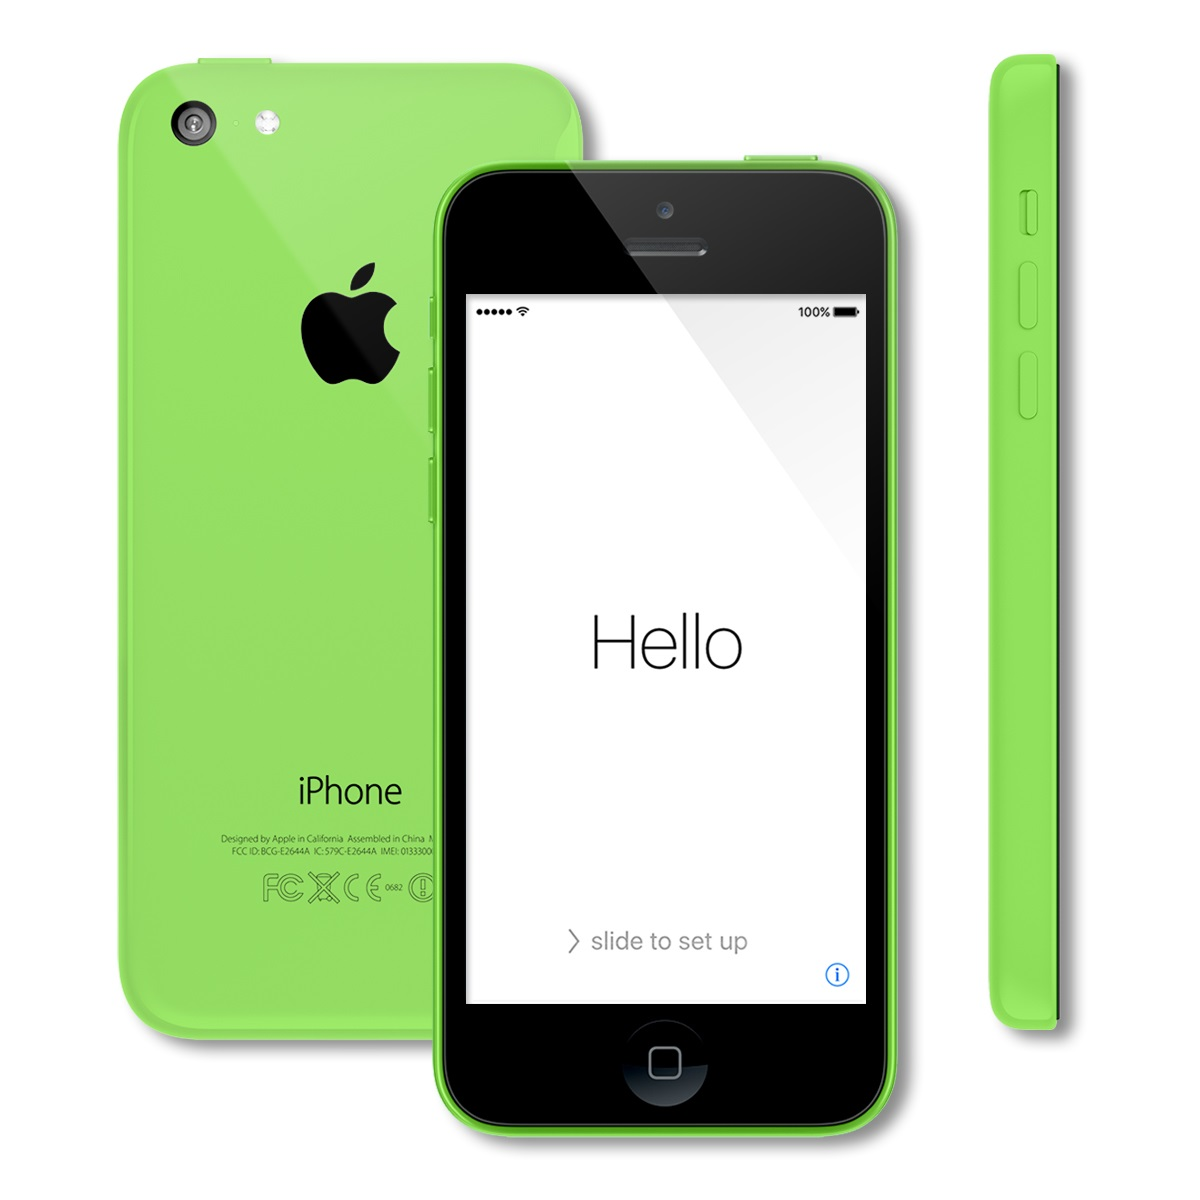 apple iphone 5c 16gb gsm unlocked smartphone a1532 at t t mobile ebay. Black Bedroom Furniture Sets. Home Design Ideas